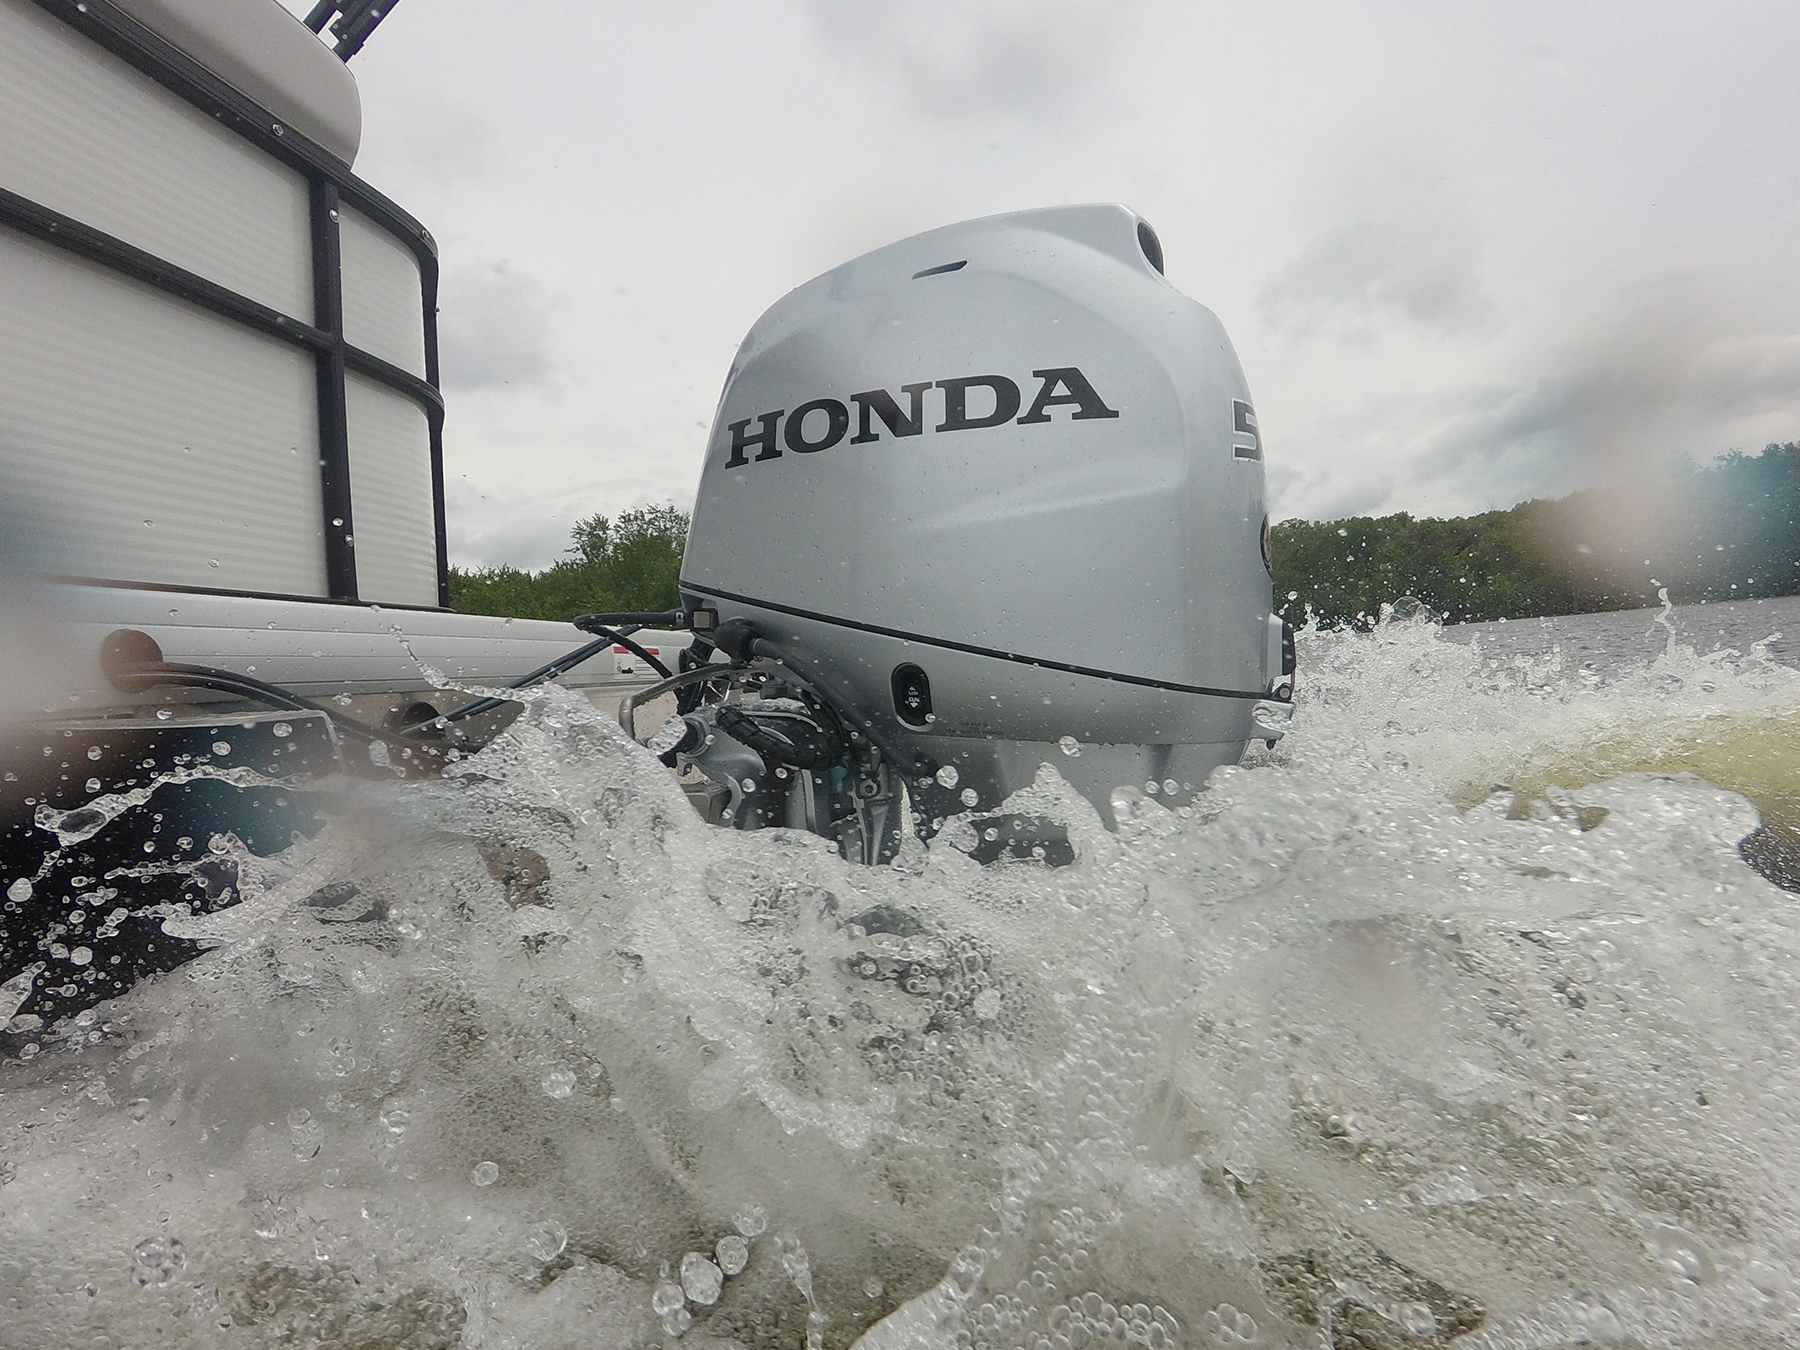 Action shot of Honda engine in the water making waves